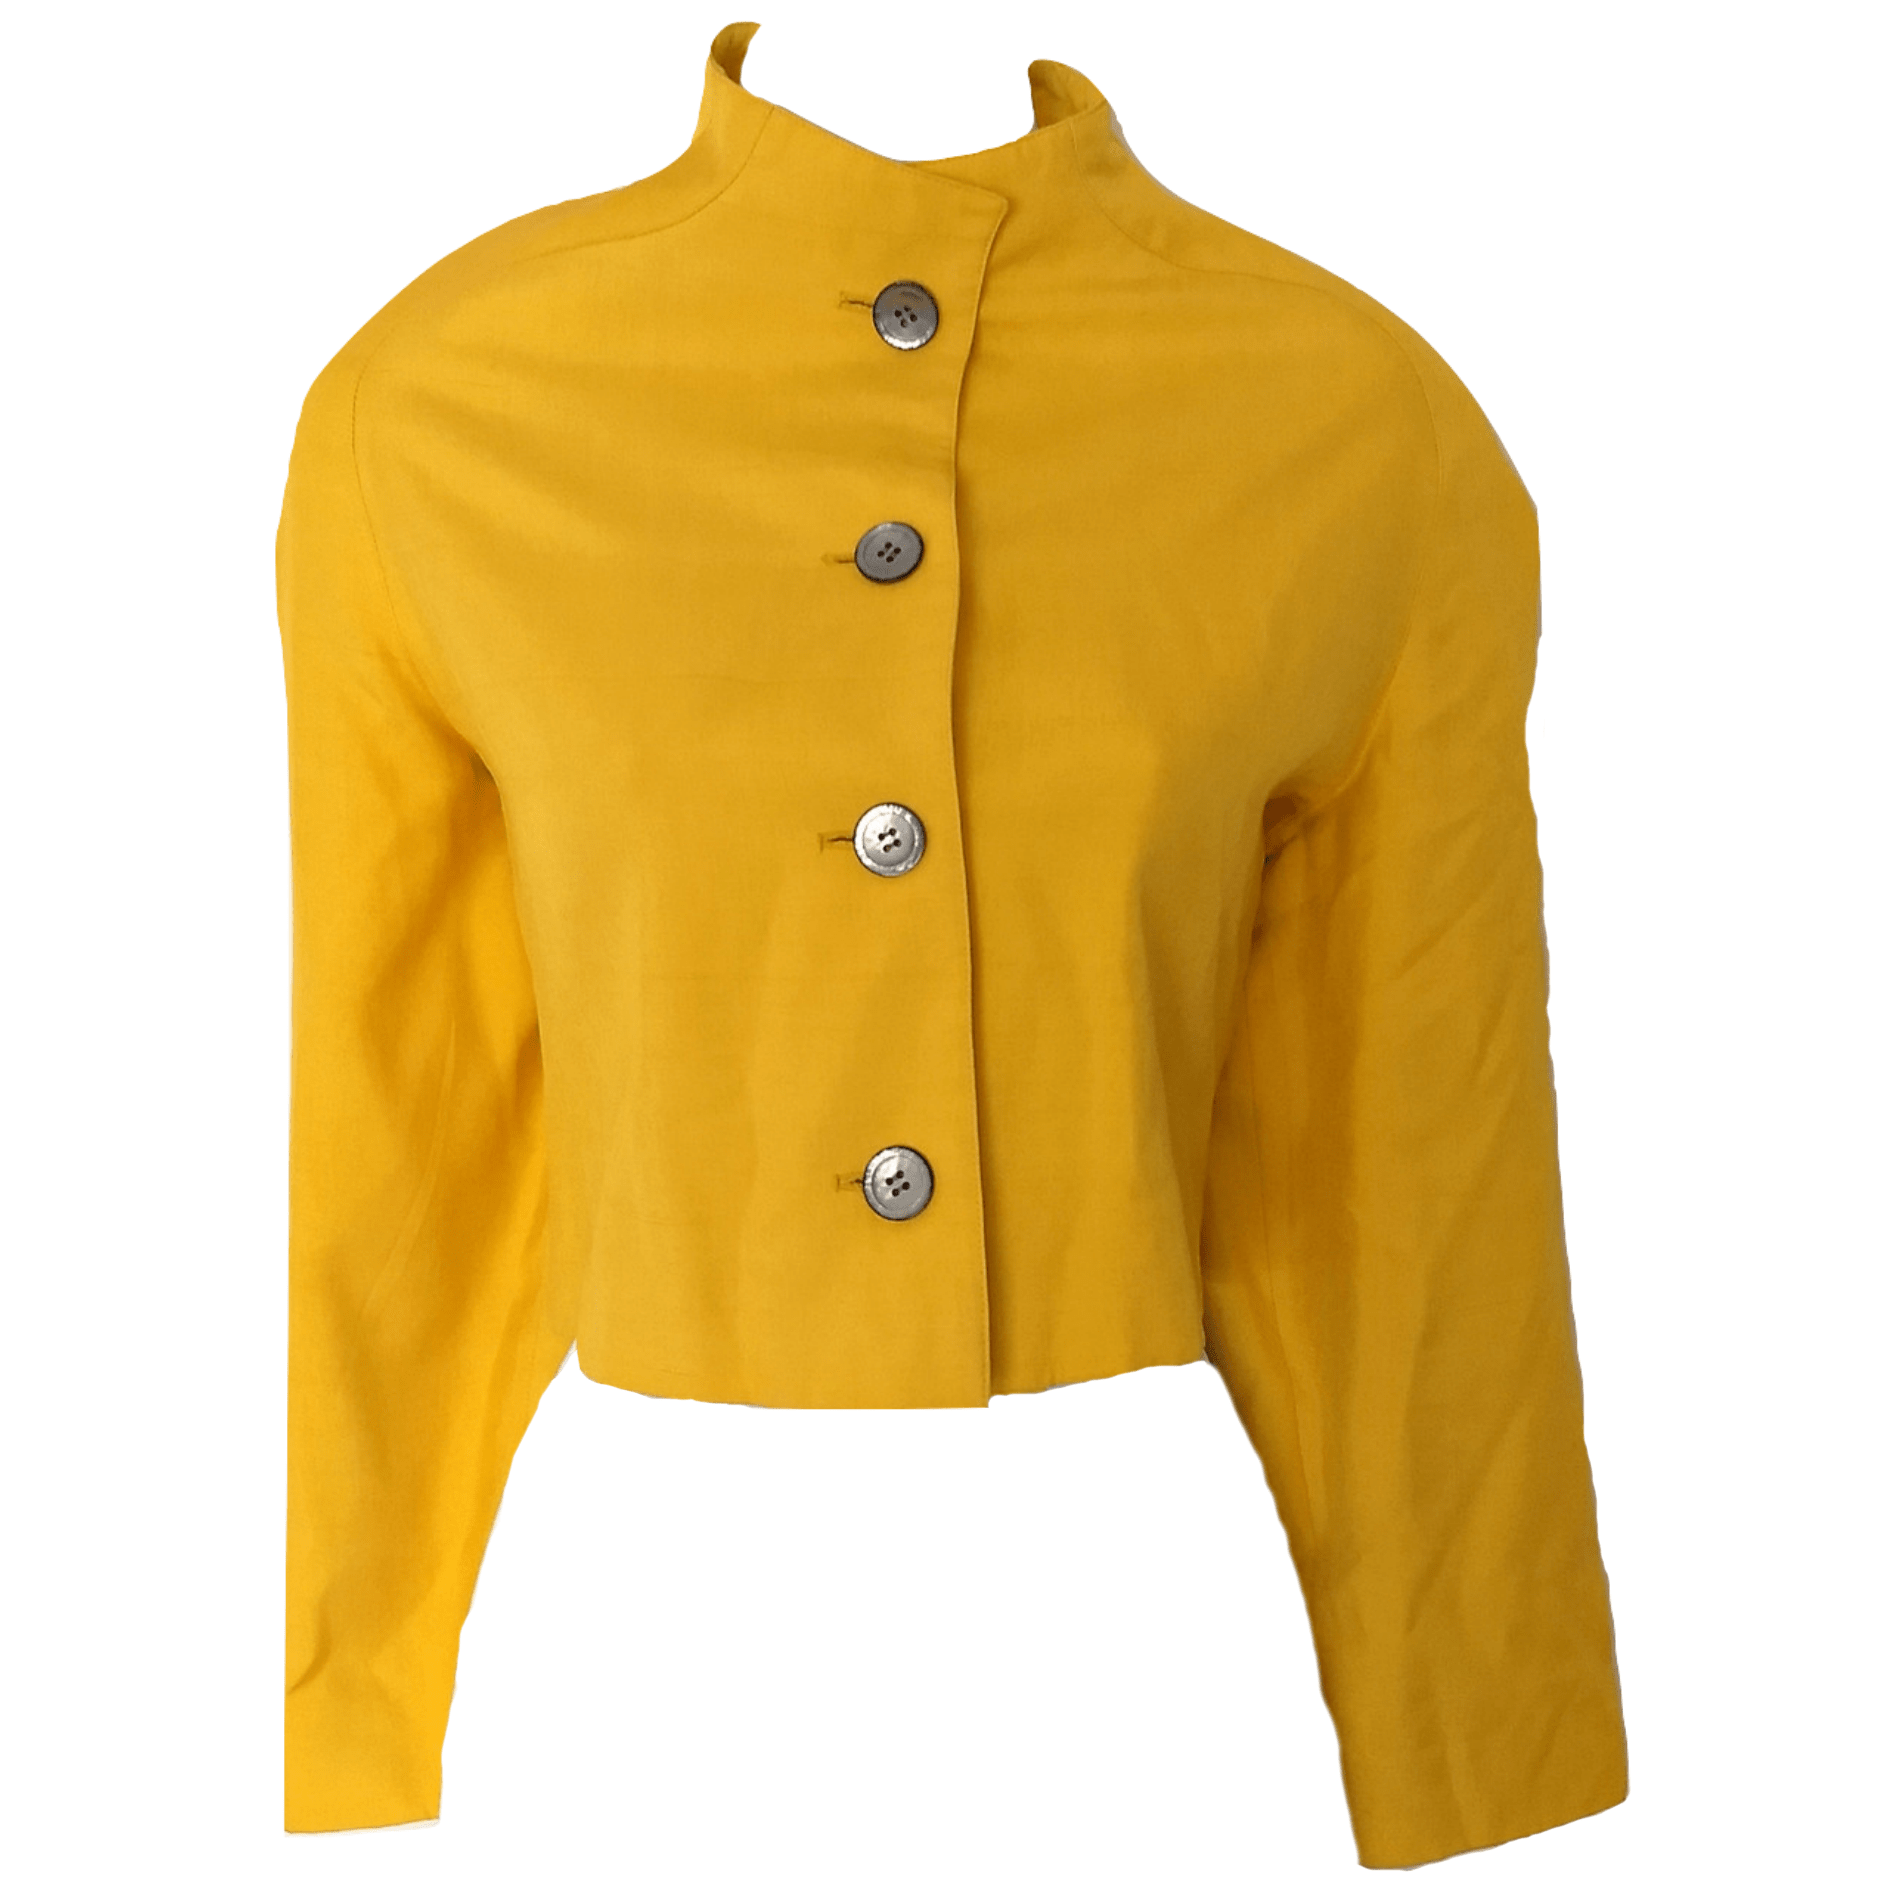 4086ec84840a08 Vintage Yellow Jacket Funnel Neck Collar 80s Blazer Cropped Size Medium –  The Pixie Dust